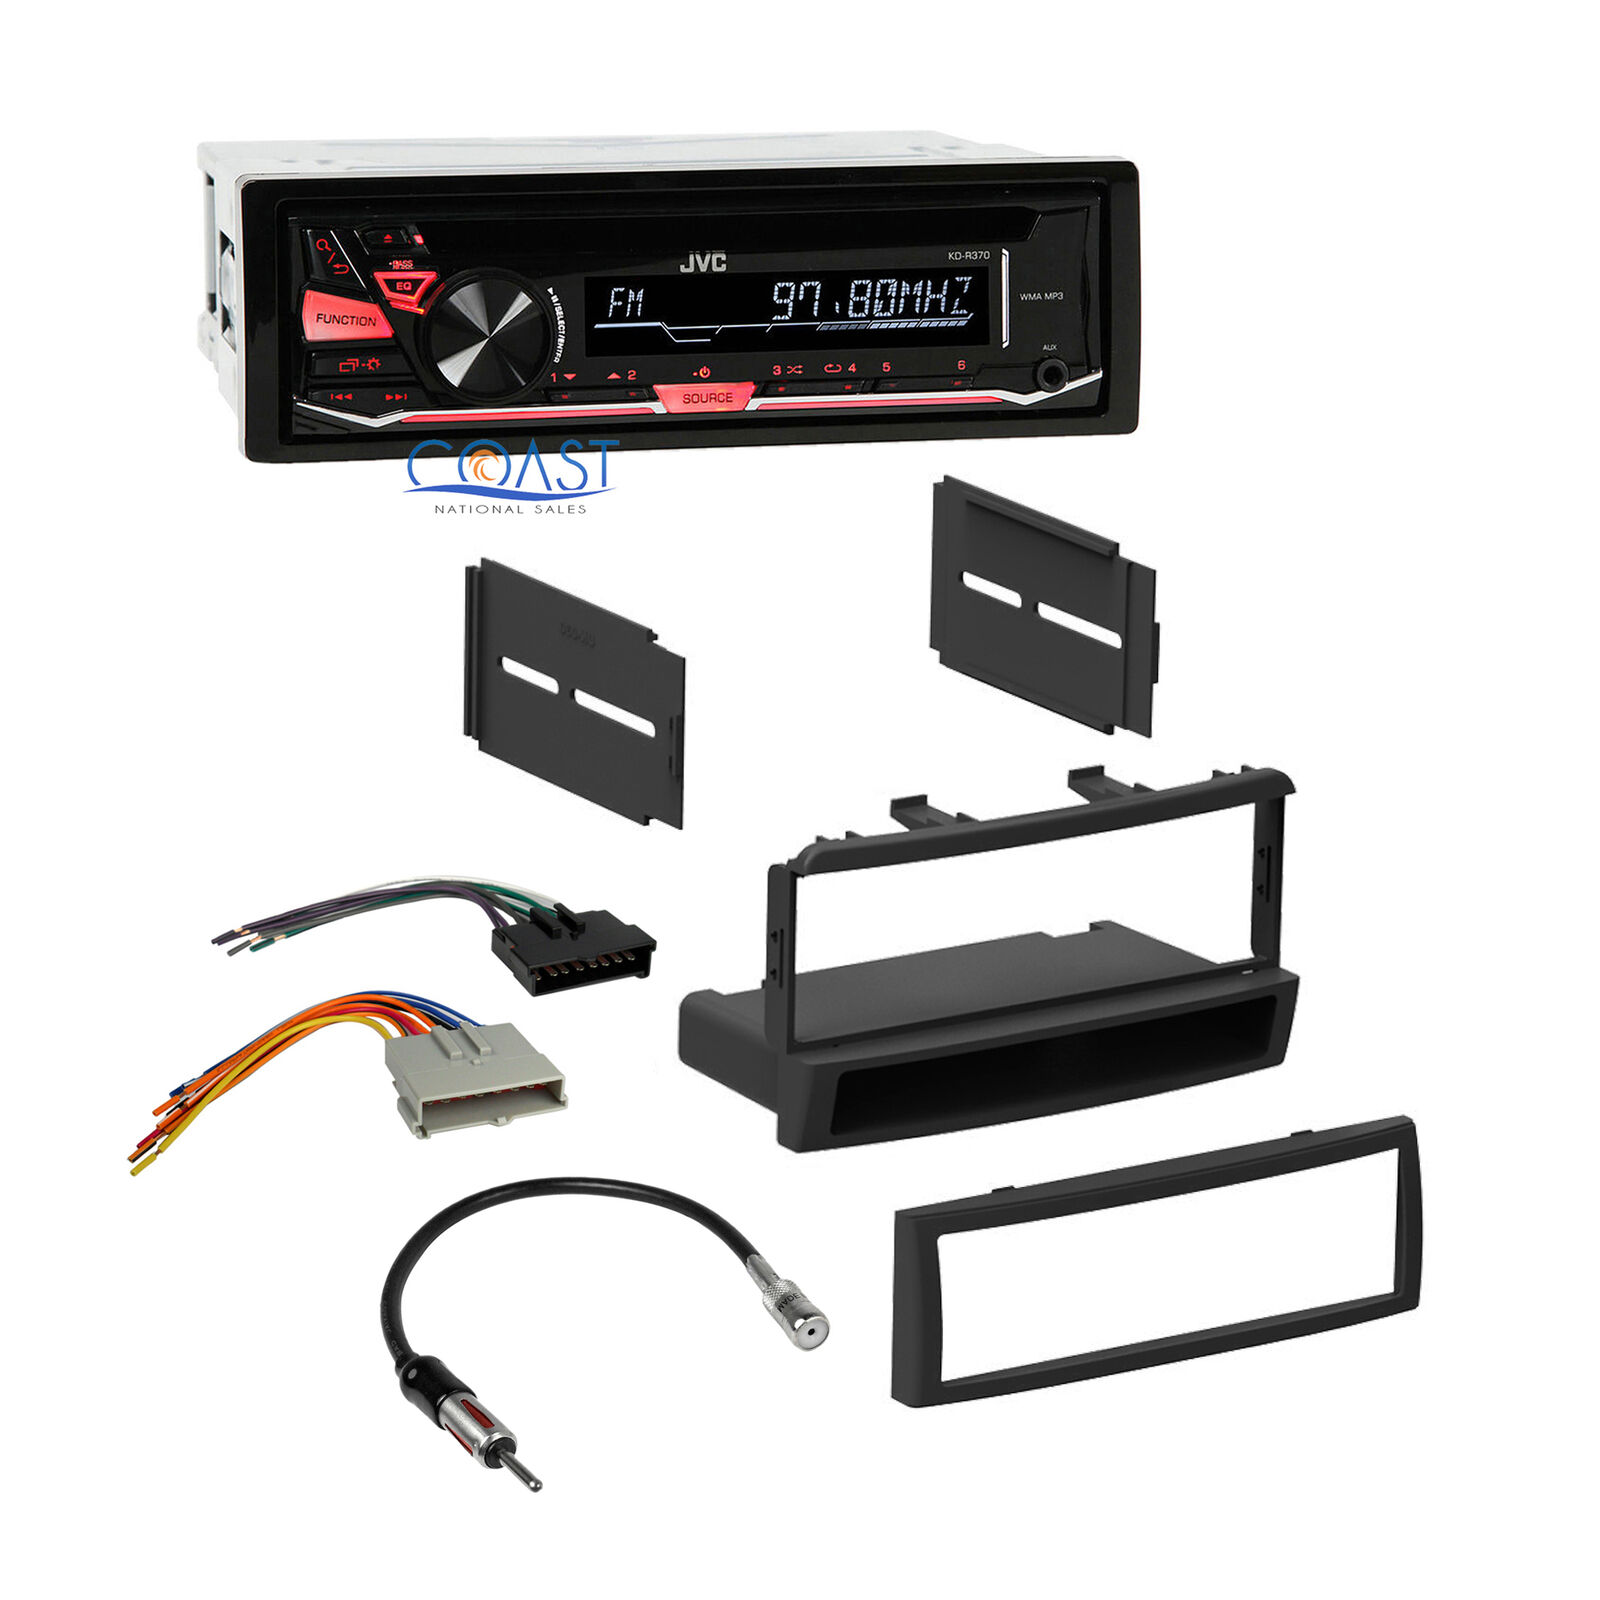 JVC Radio Stereo Dash Kit Wiring Harness for 98 -04 Ford Focus Mercury  Cougar 1 of 5FREE Shipping ...